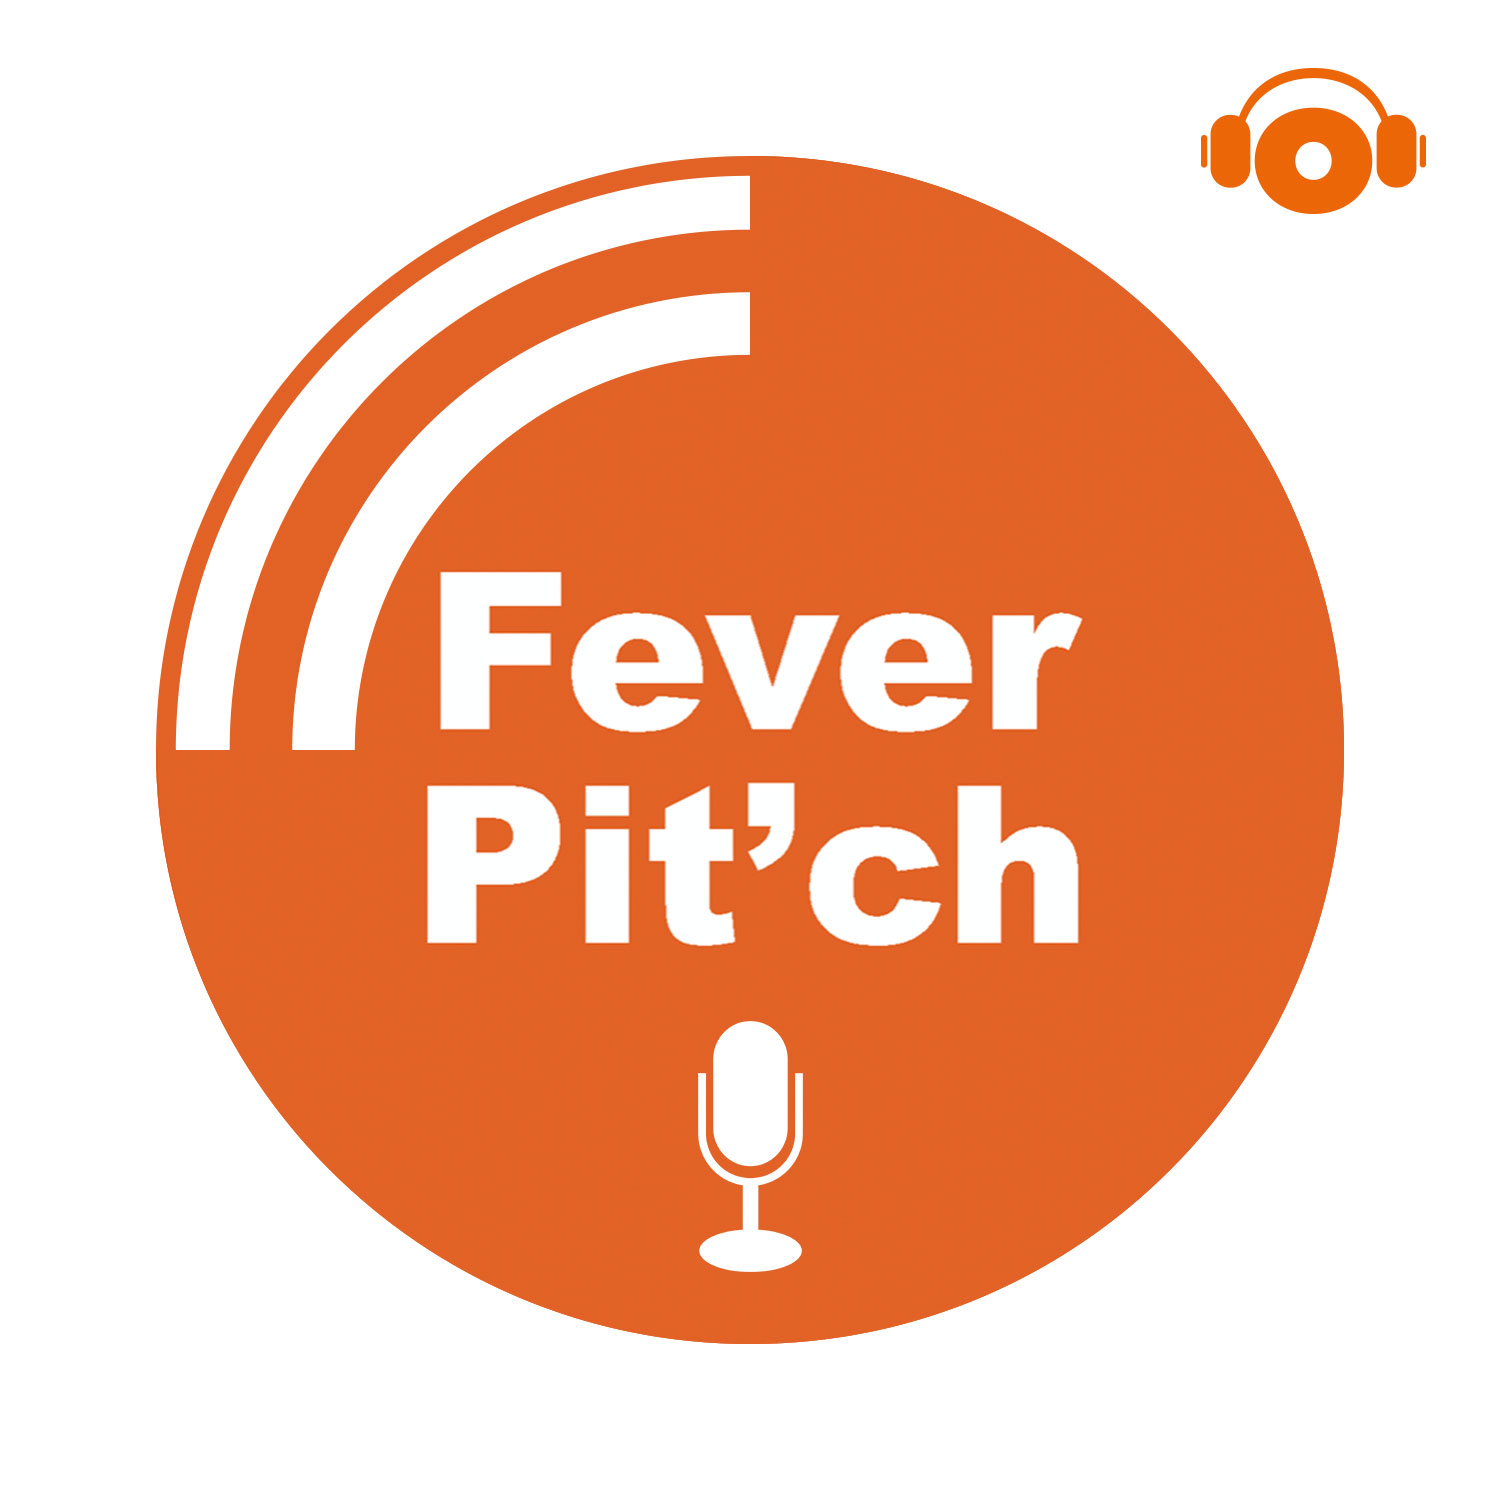 Fever Pit´ch